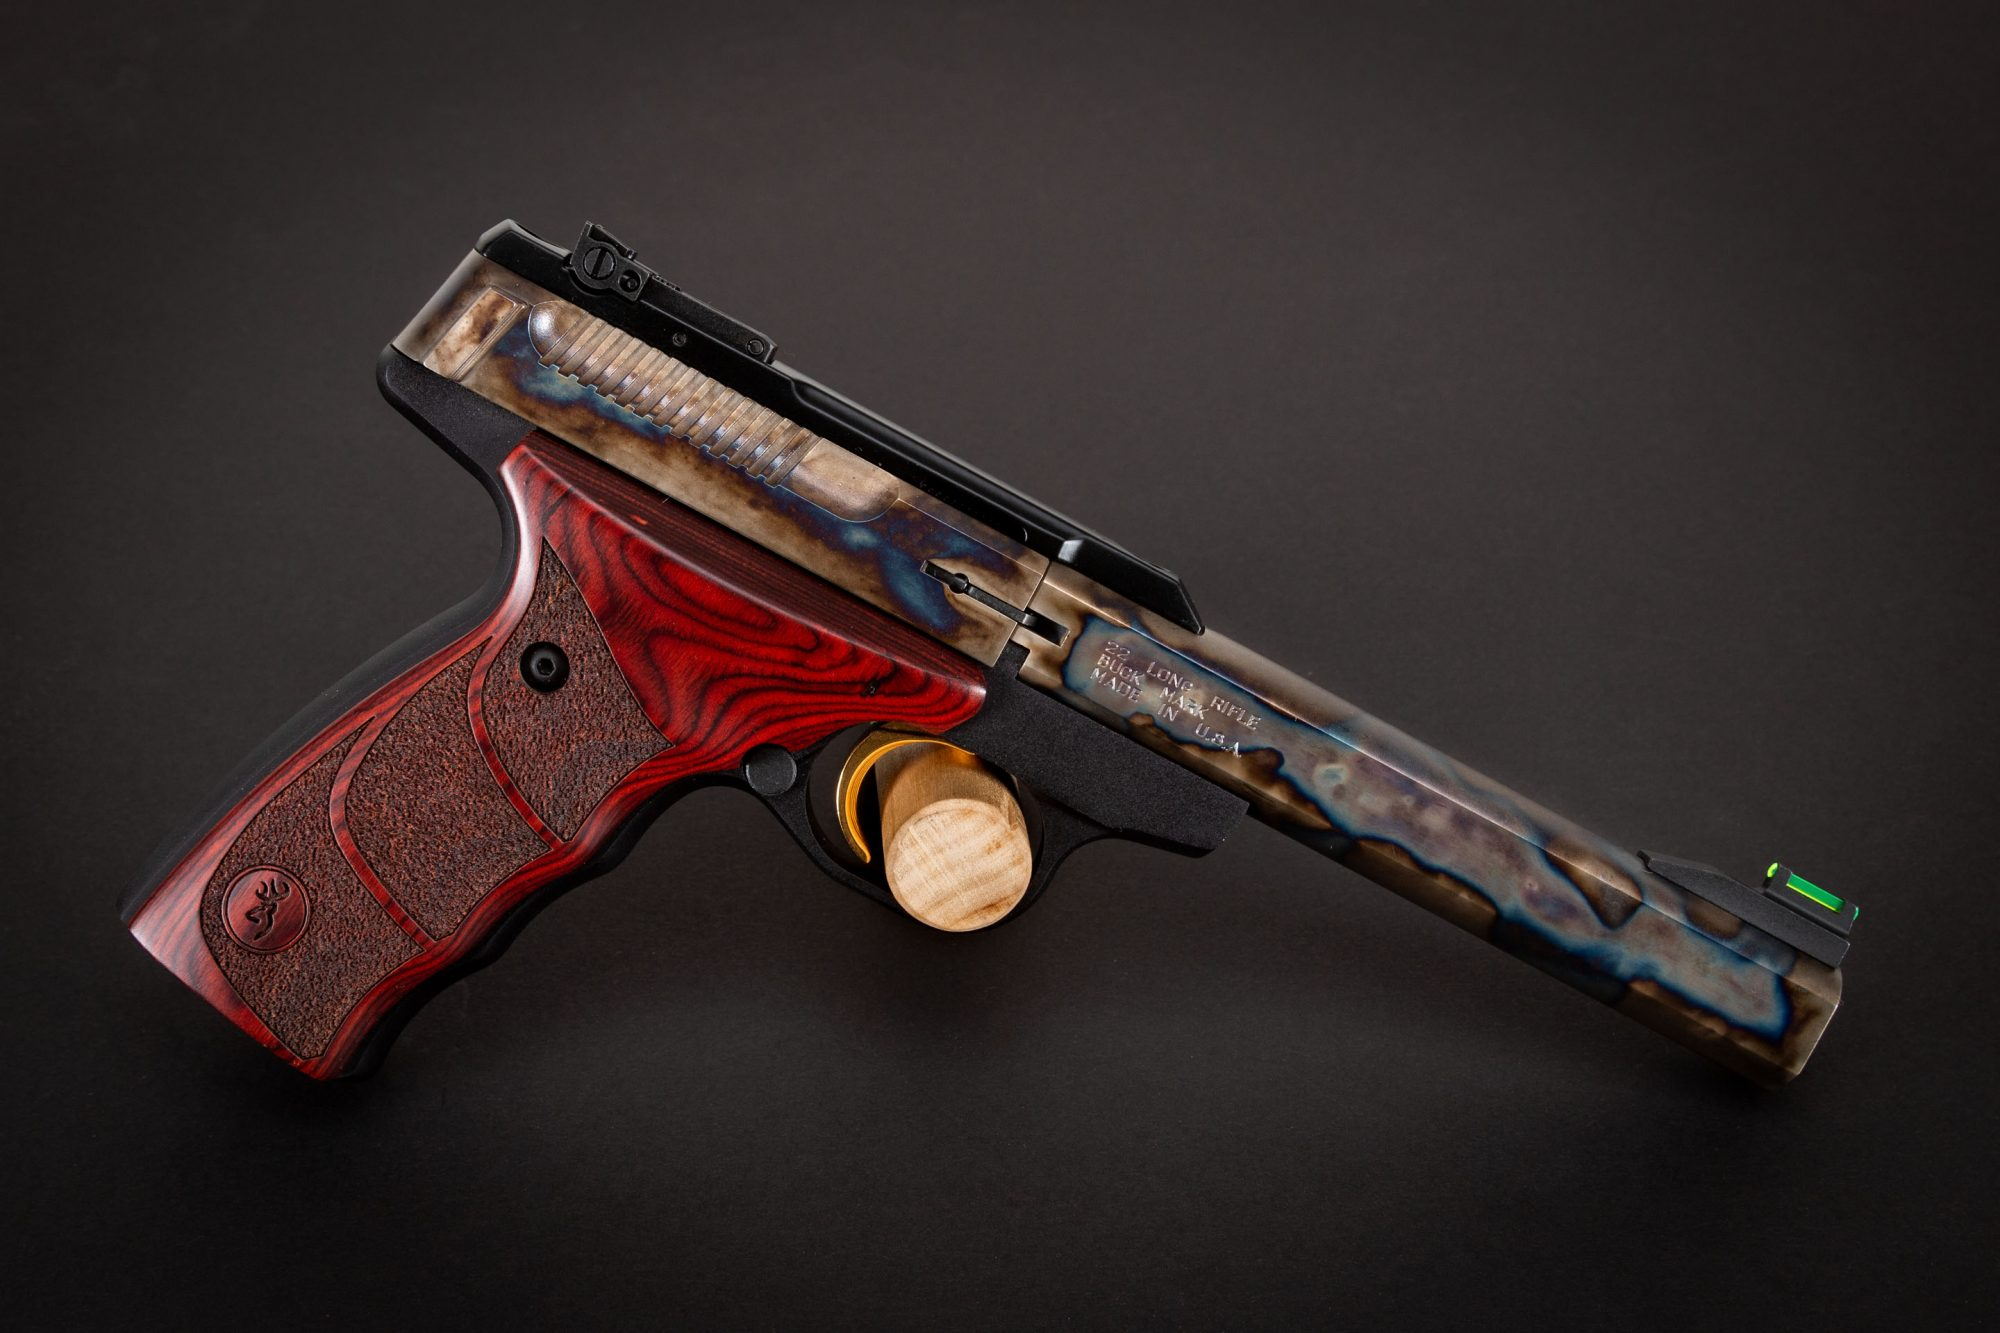 Photo of a color case hardened Browning Buck Mark pistol, featuring bone charcoal color case hardening by Turnbull Restoration of Bloomfield, NY